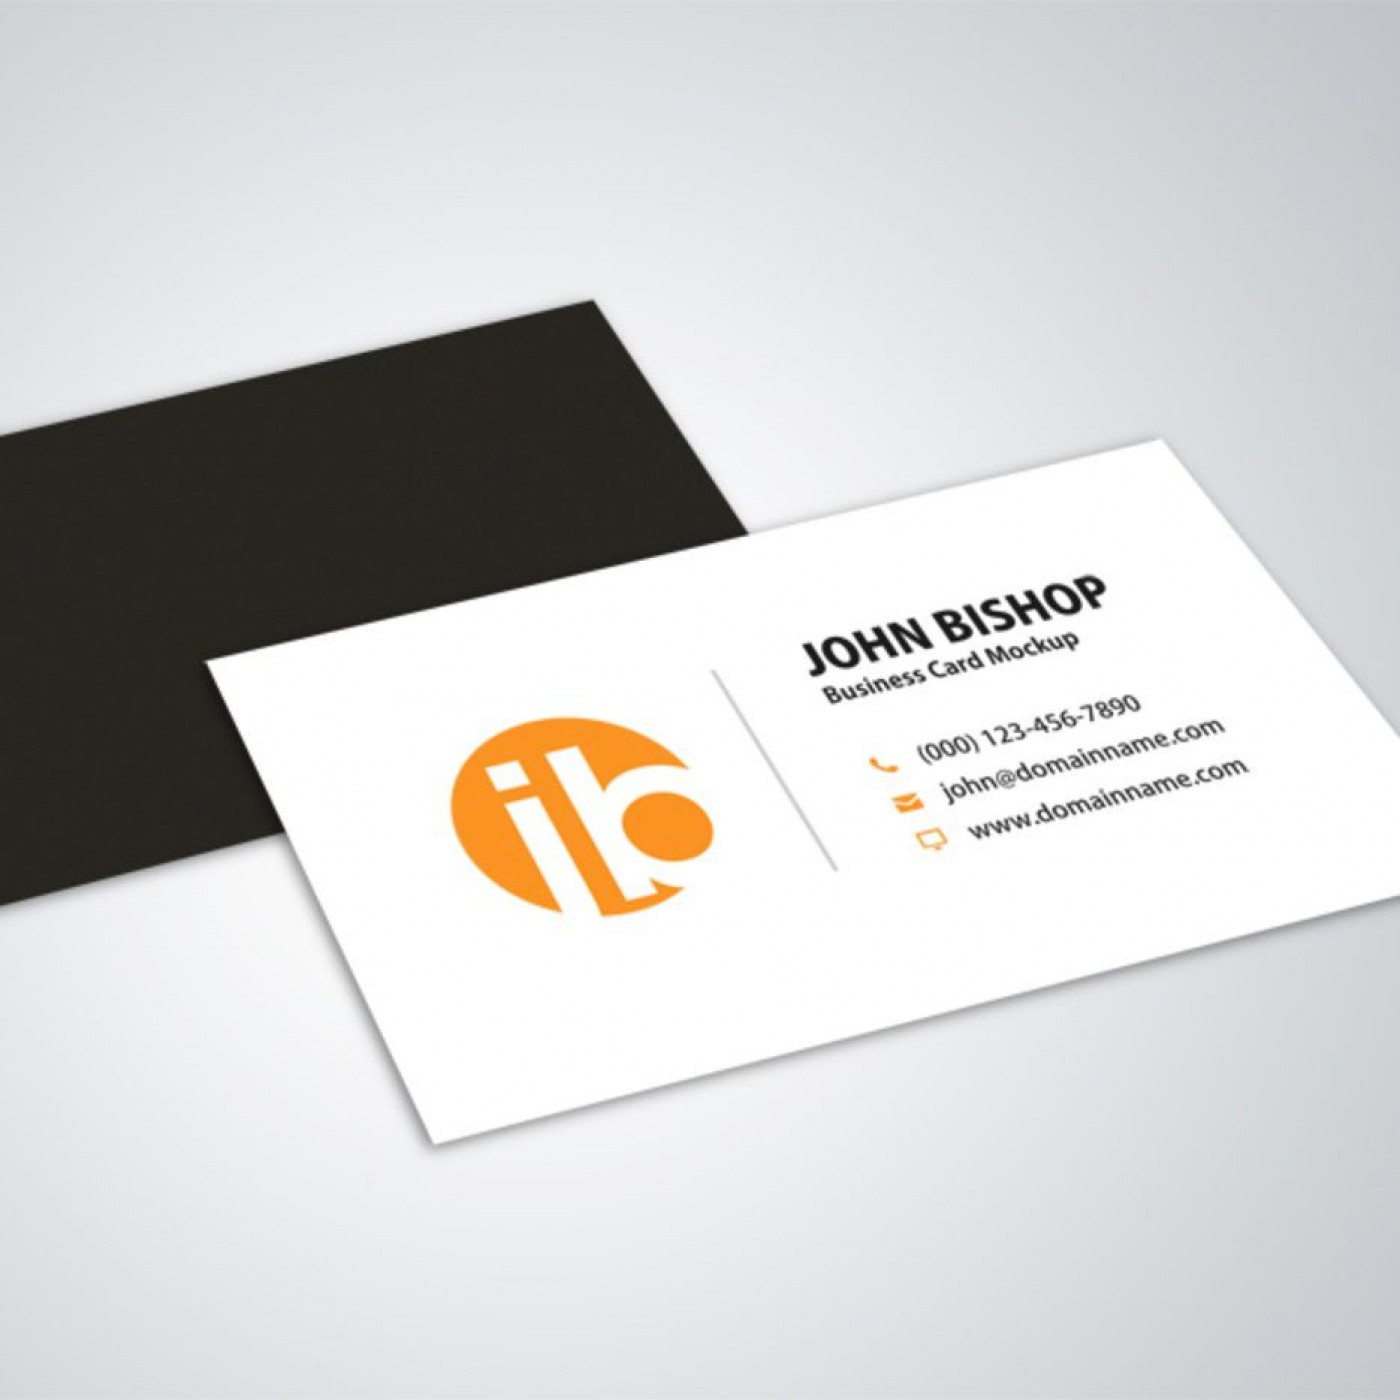 006 Wondrou Simple Visiting Card Design Picture  Calling Busines Template Free In Photoshop1400